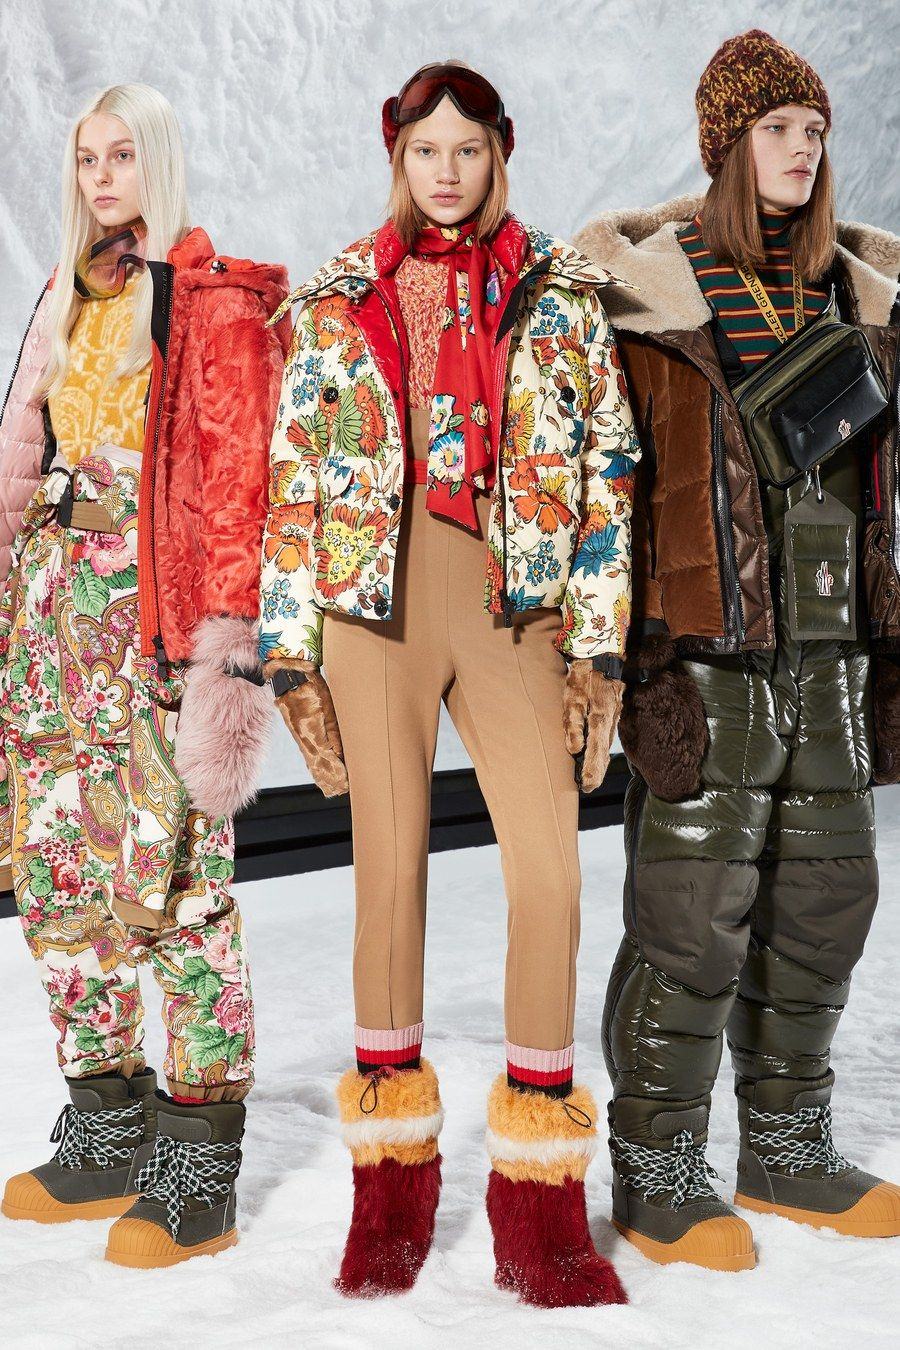 90c2007d34b9 Moncler 3 Grenoble Fall 2018 Ready-to-Wear collection, runway looks,  beauty, models, and reviews.